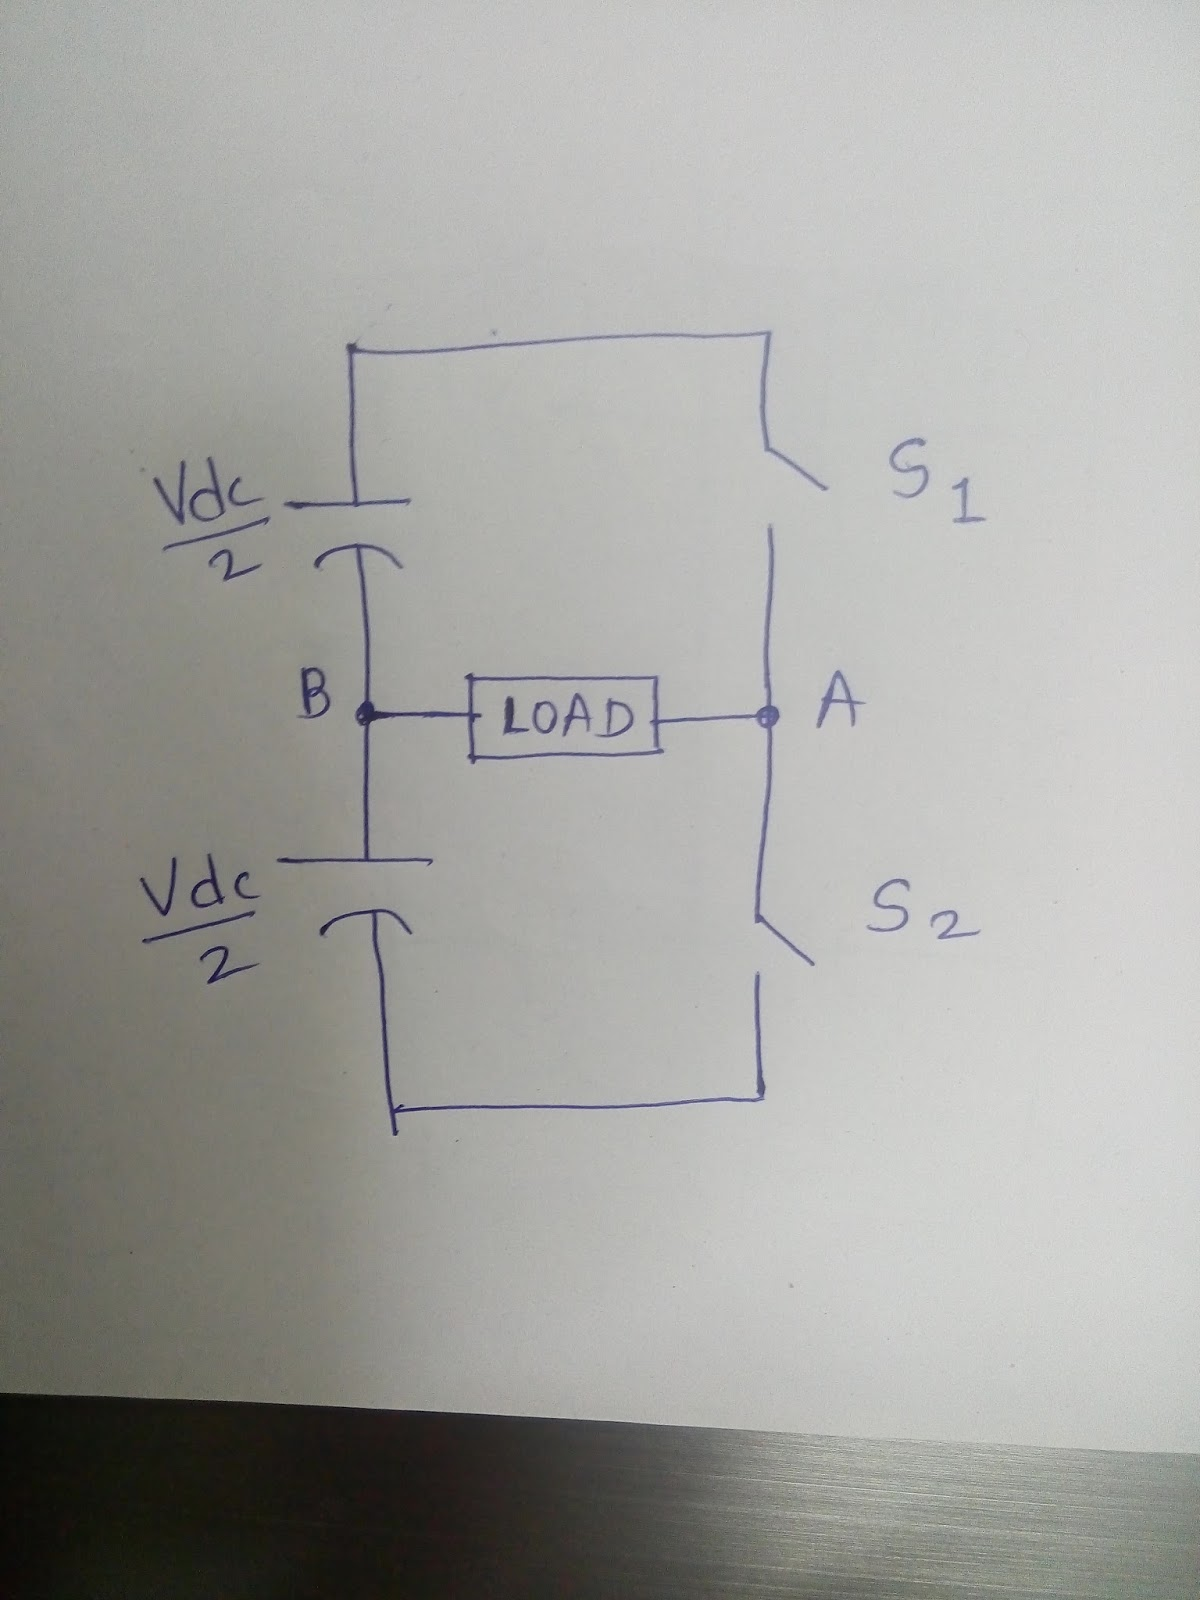 Electricity From Pacemakers To Windmills July 2016 H Bridge Inverter Circuit Diagram This Is Called Full Or Single Phase More Popularly It Known As Structure When We Turn On Switch S1 And S4